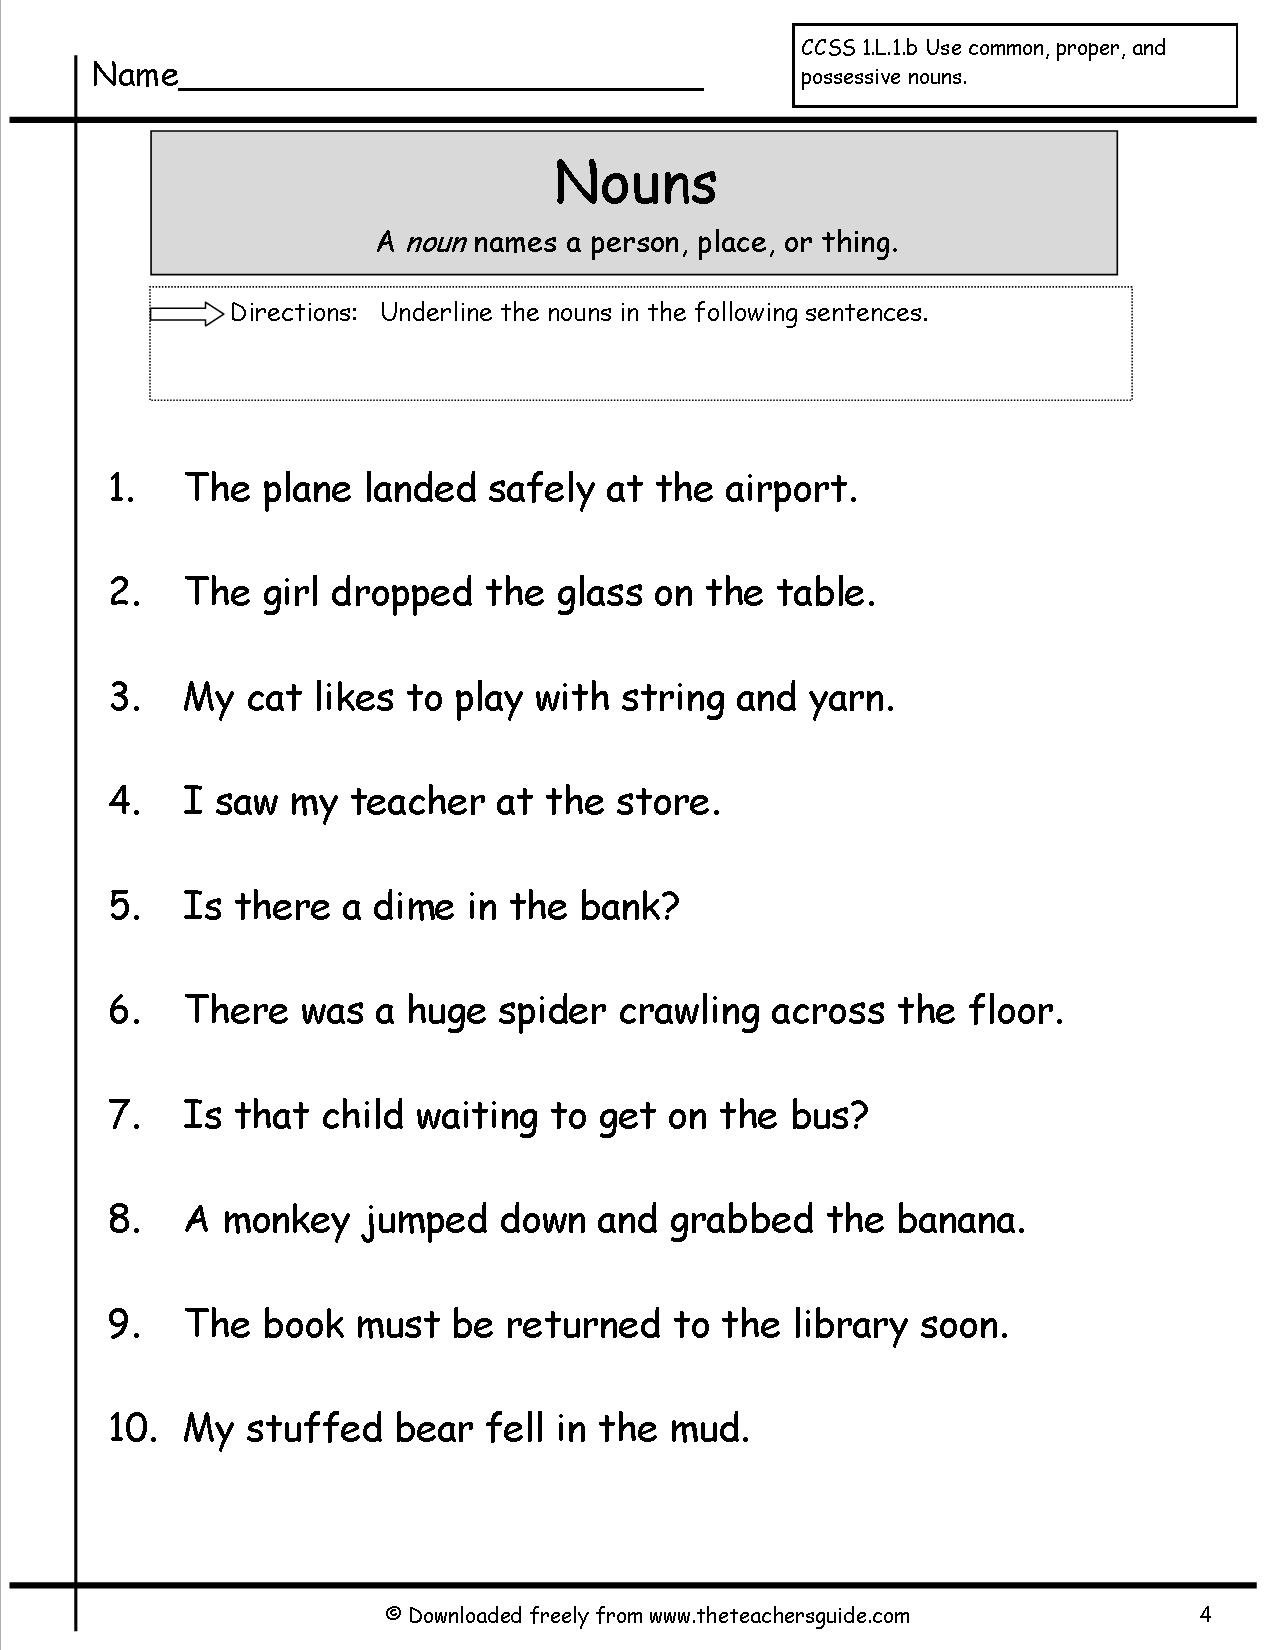 Free Printable Worksheets For Nouns Image Collections